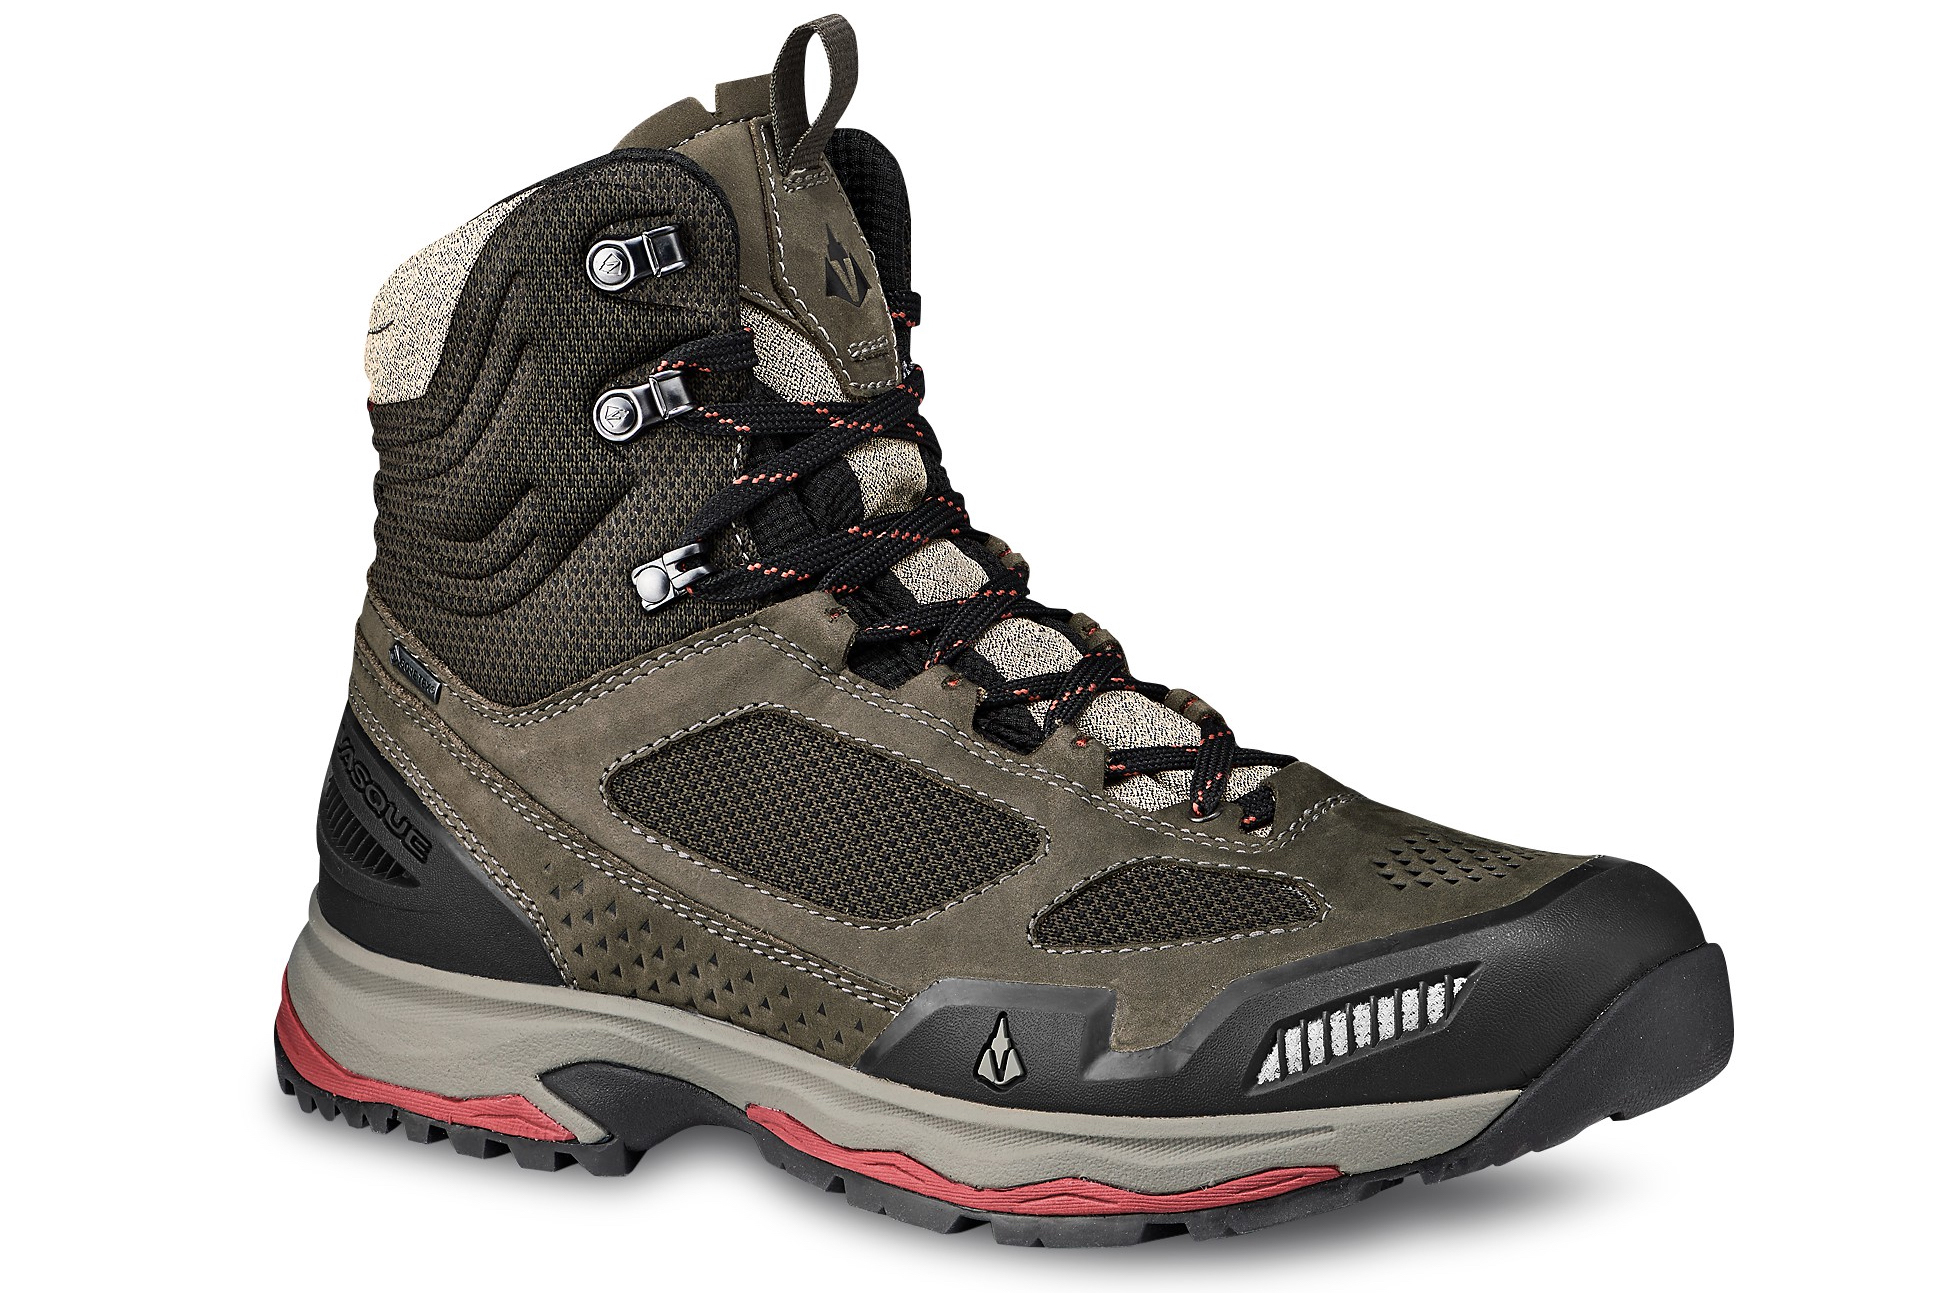 Vasque Breeze AT GTX hiking boot